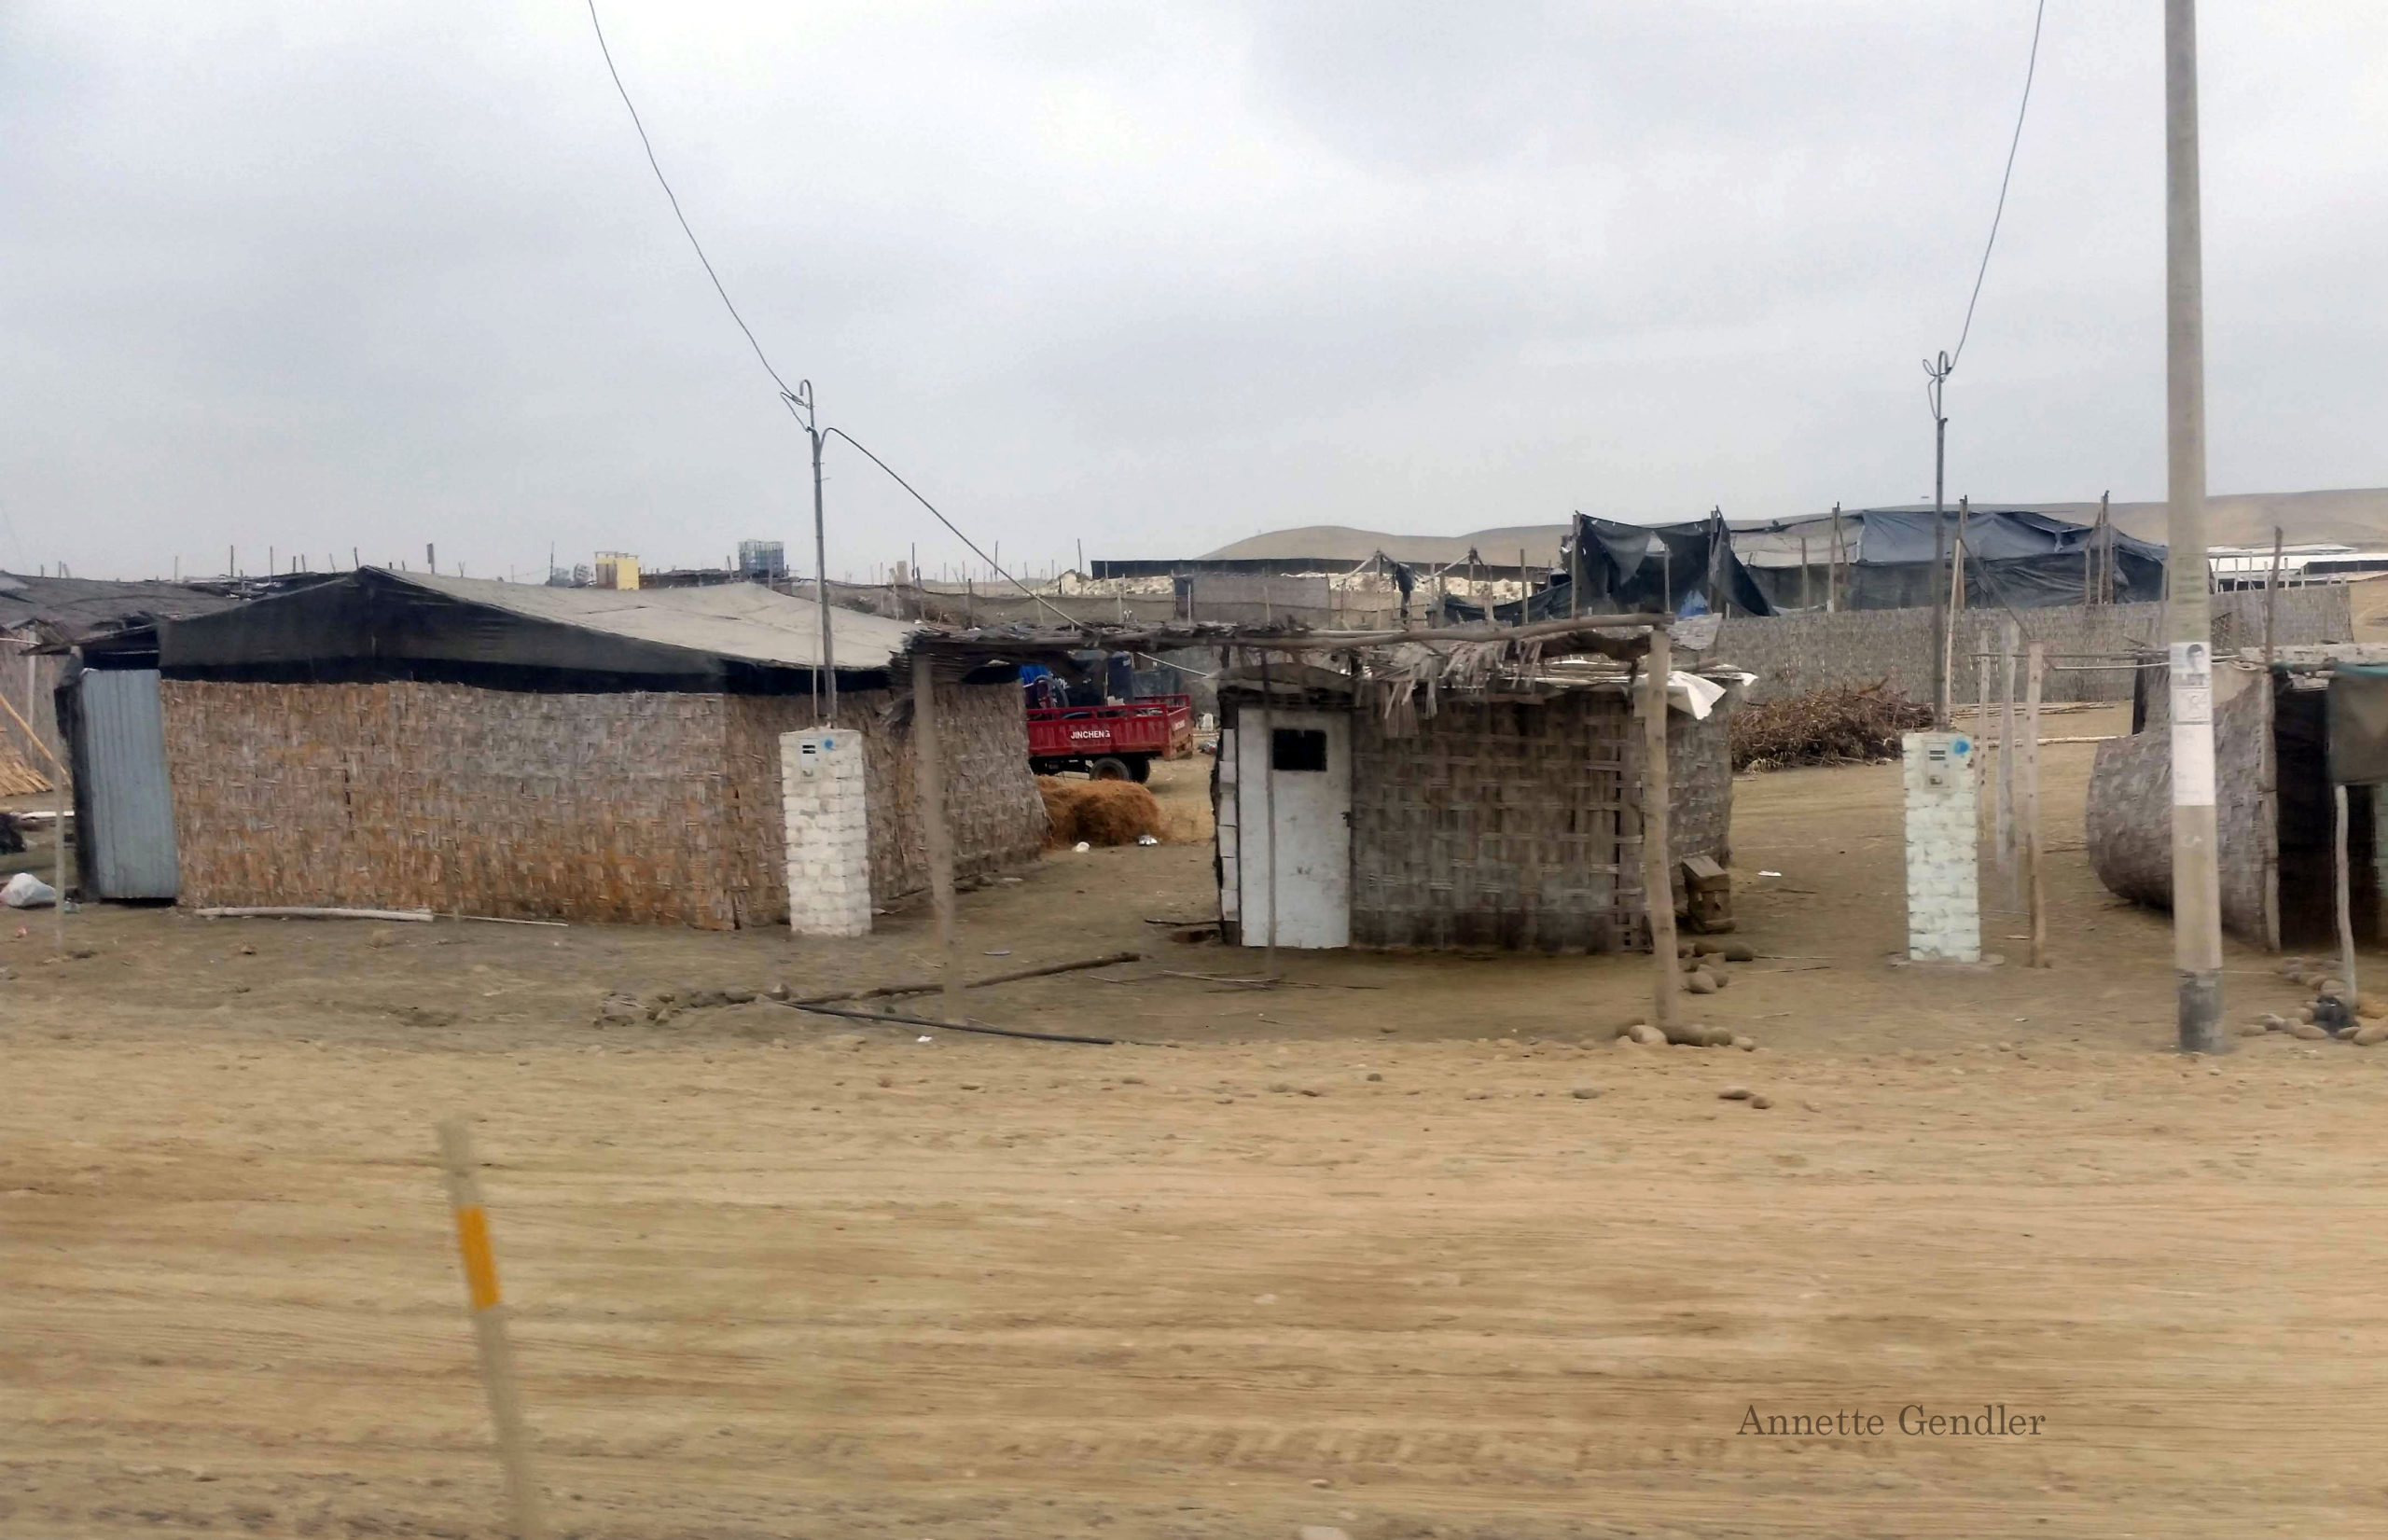 Electricity lines running to reed huts in shanty town in Peru